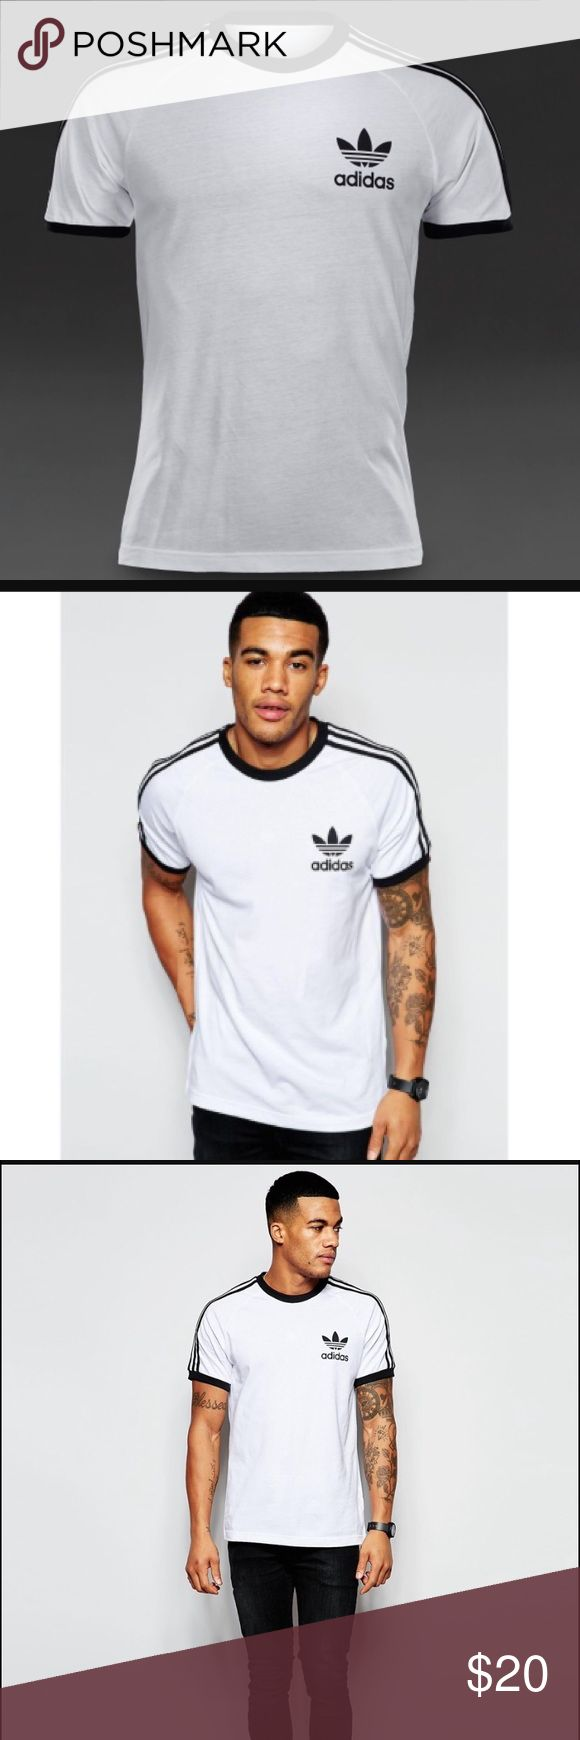 9 Best Presents For Luke Images On Pinterest Cool Stuff Baju Pria 9gag Adidas Mens California T Shirt Xl Casual Slim Fit Tshirt By White With